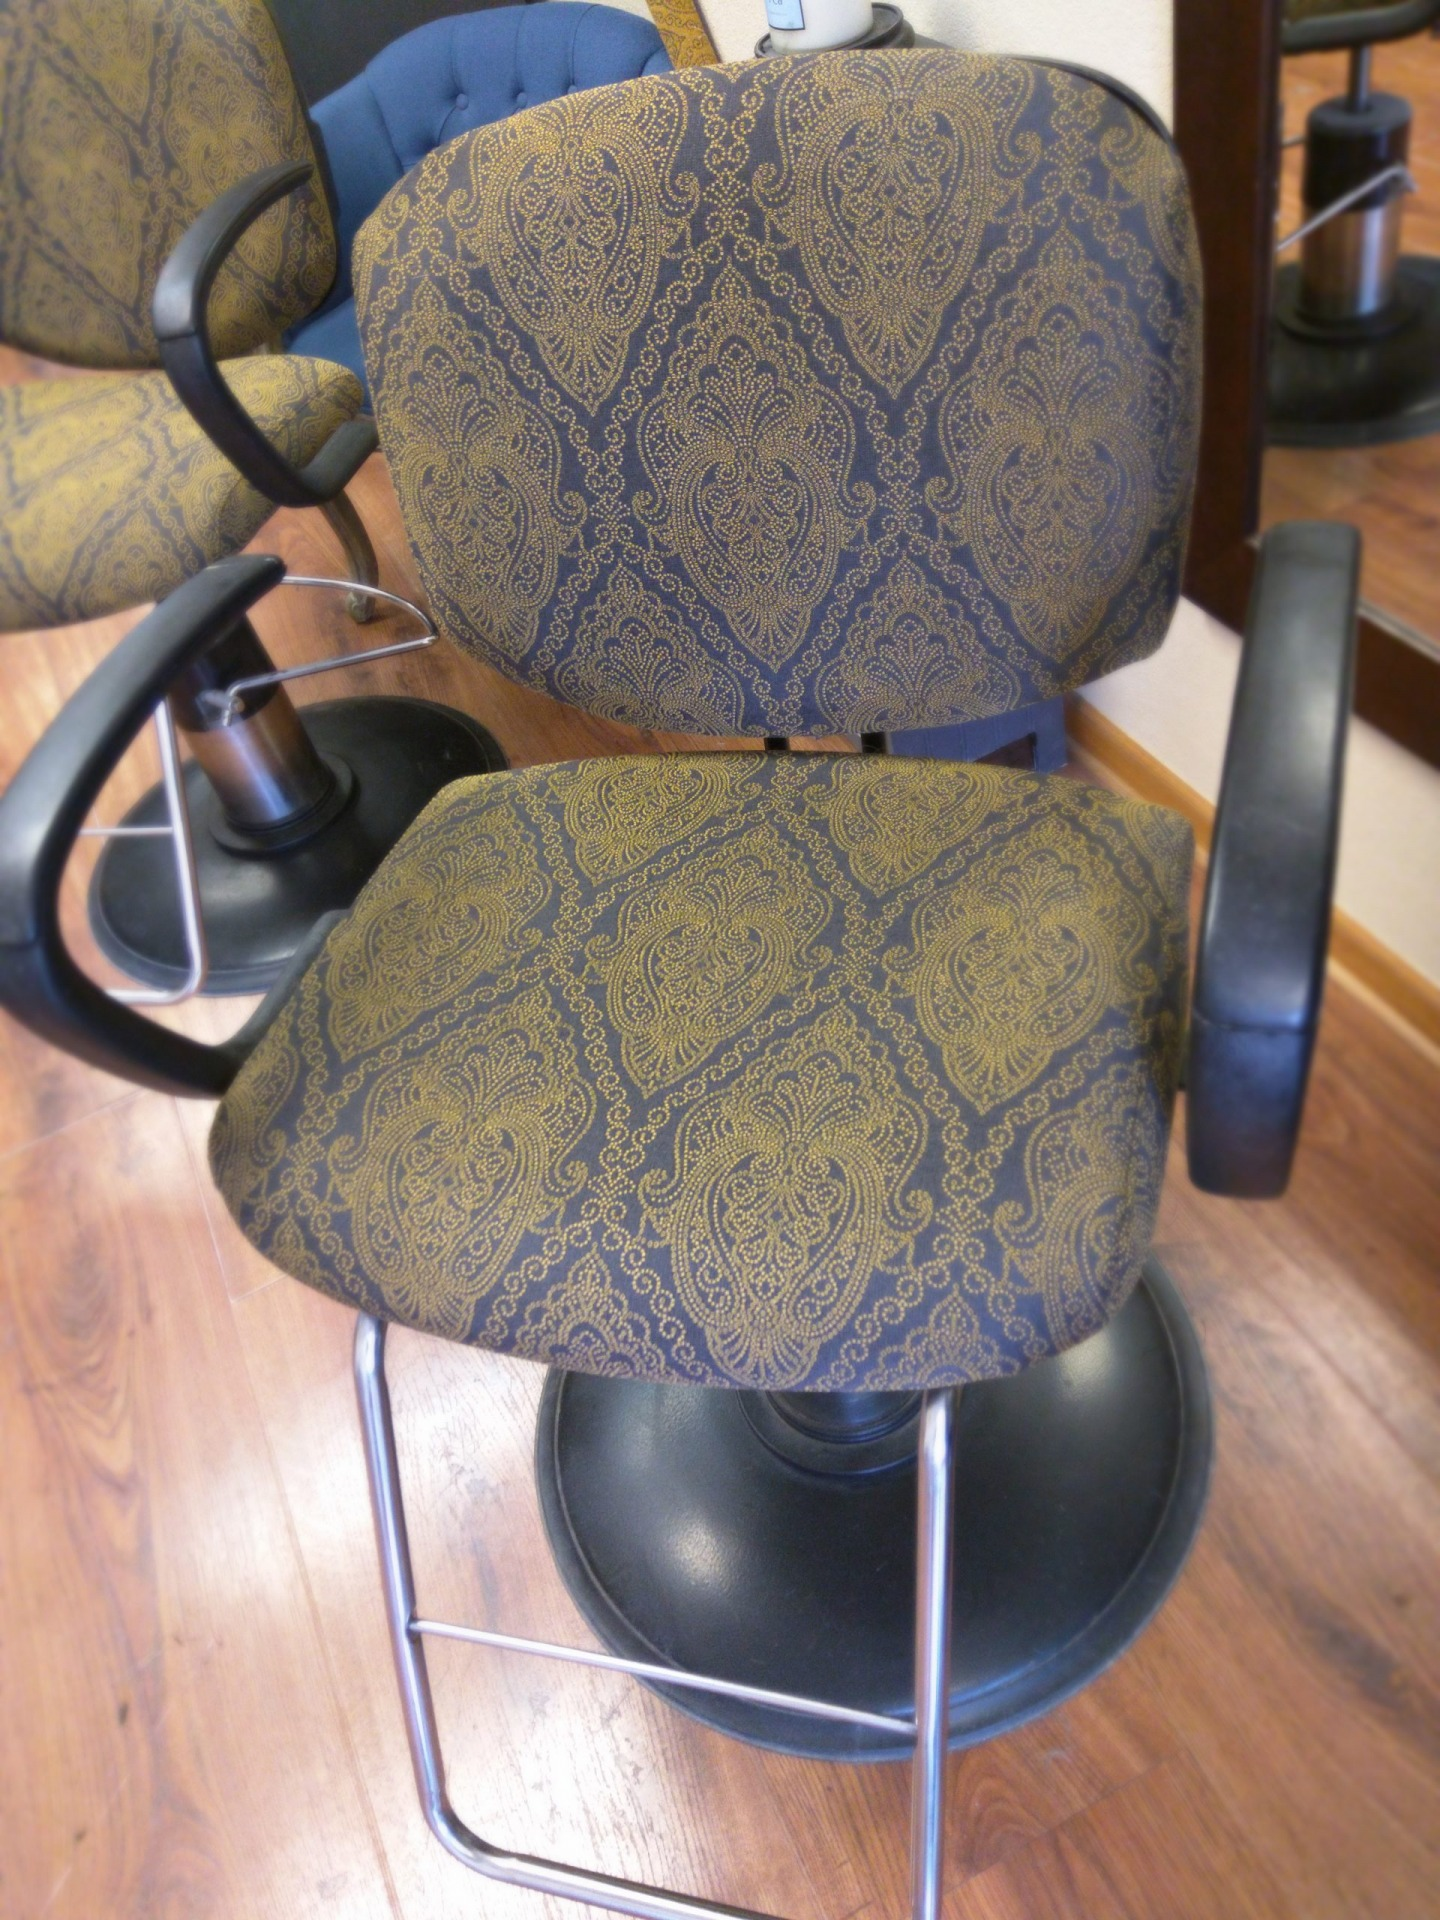 Salon Chair Upholsterey in Bombay Goldmine and sprayed with 303 Fabric Guard